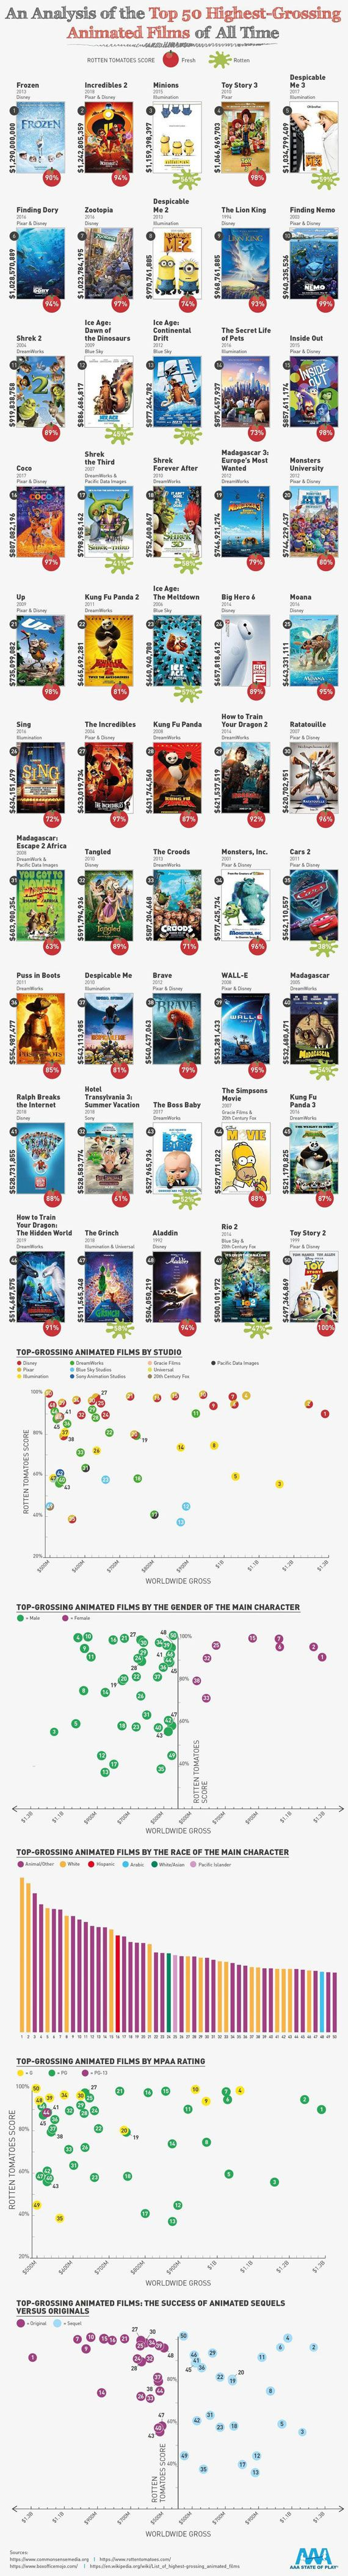 50 HighestGrossing Animated Films of All Time Analyzed